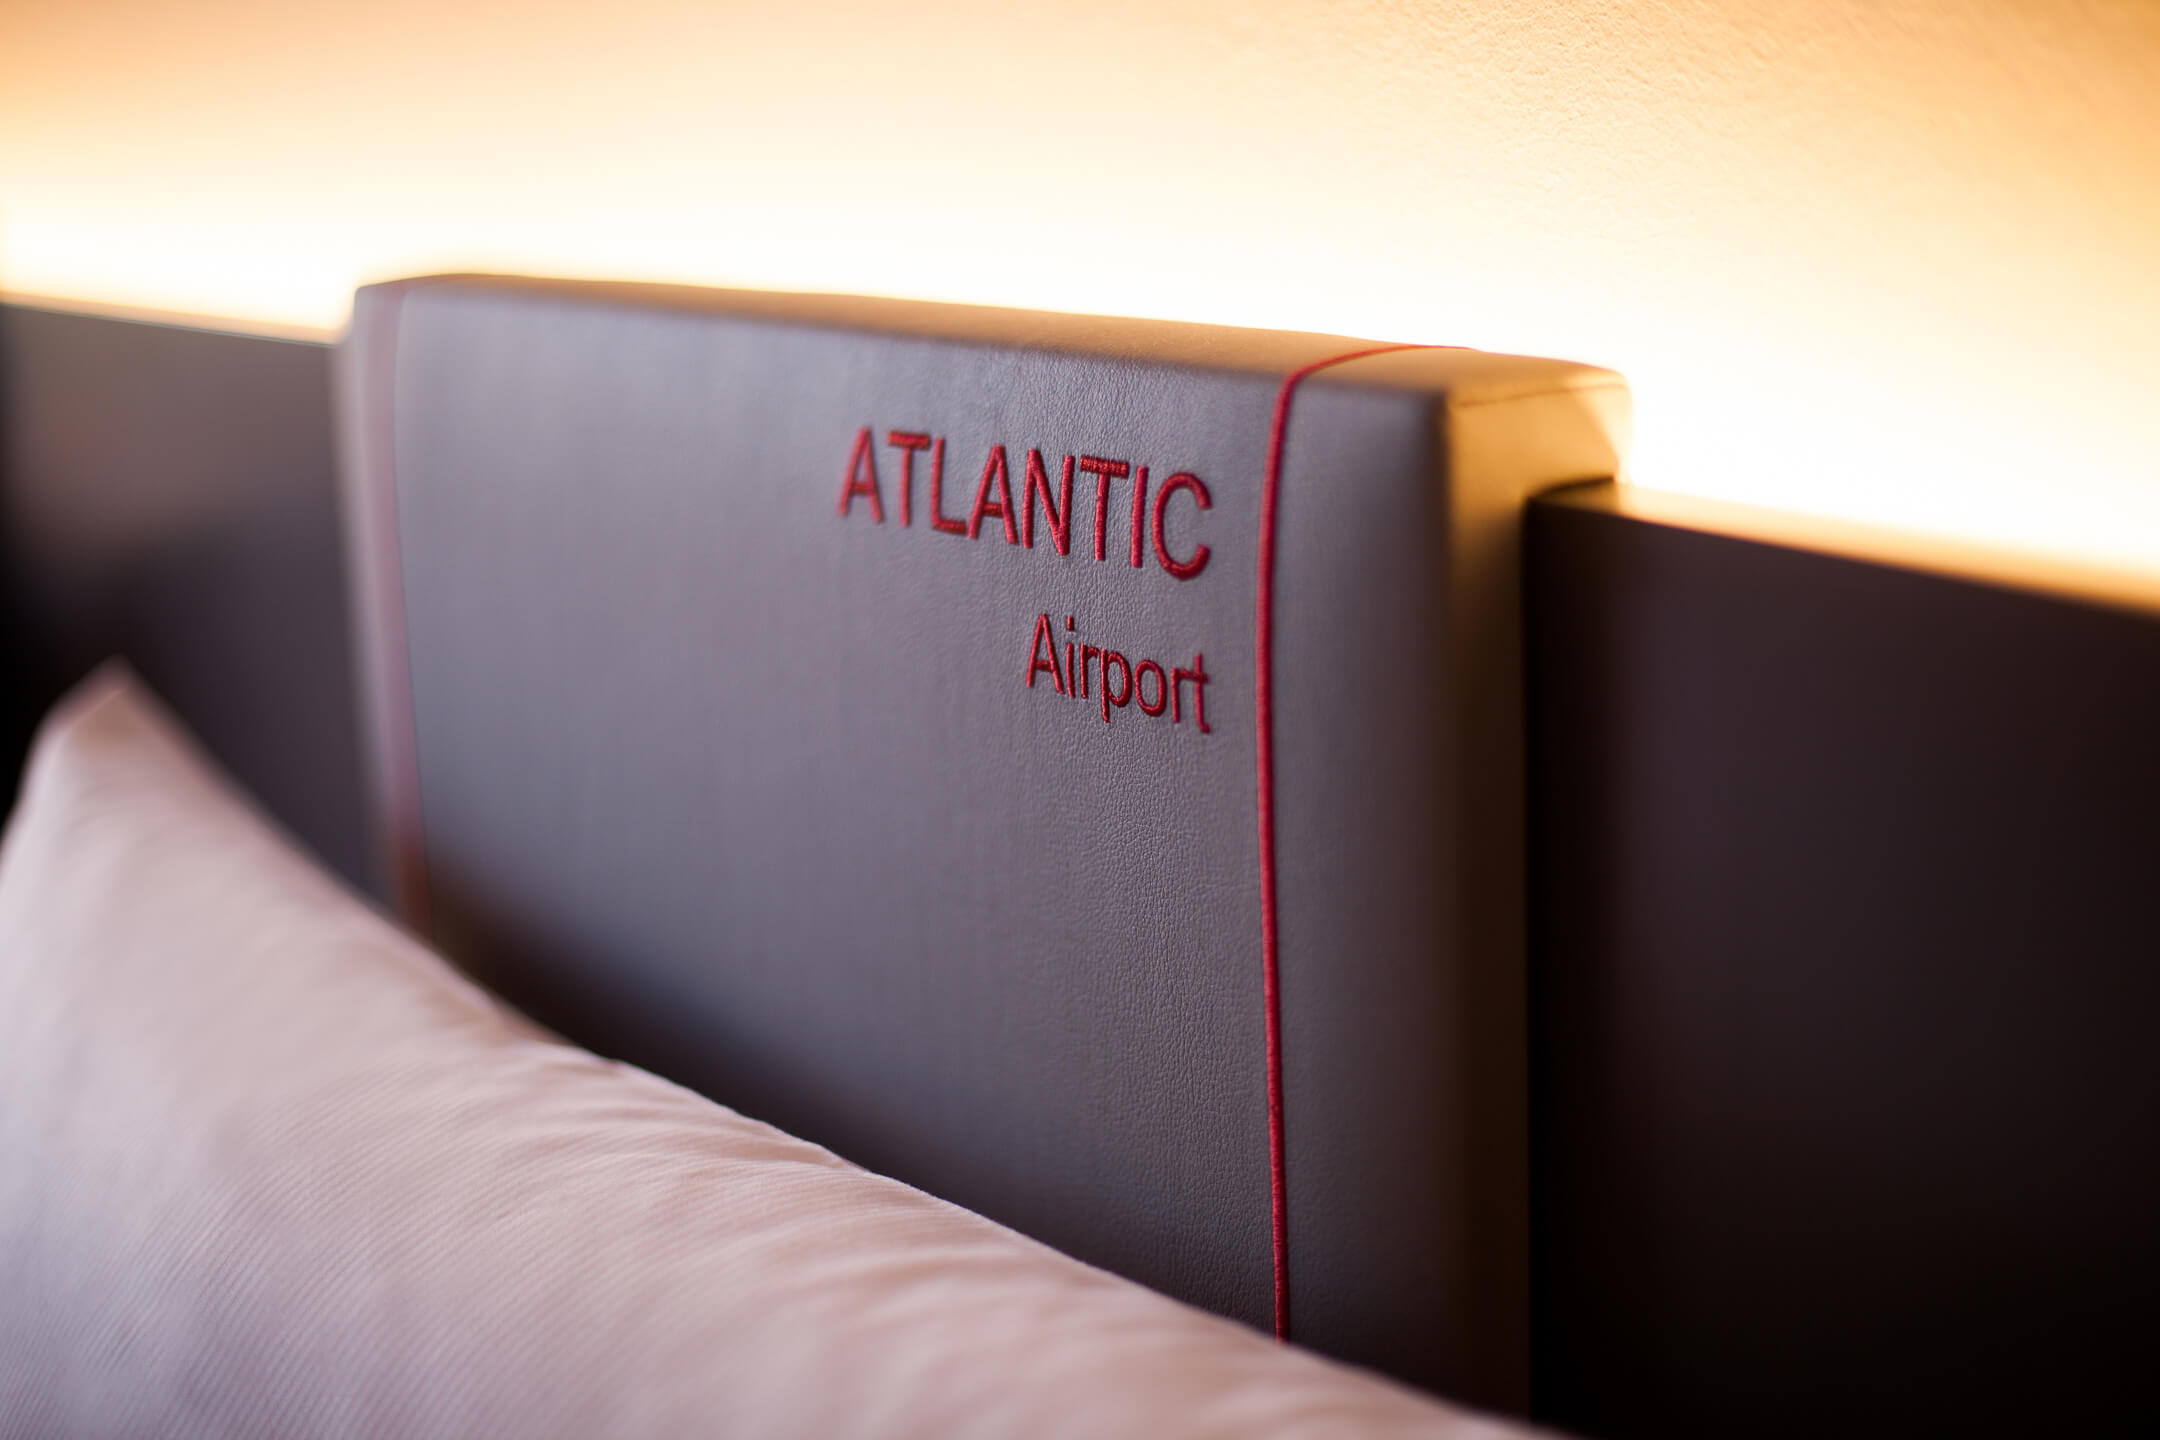 Logotype of the ATLANTIC Hotel Airport at the bed